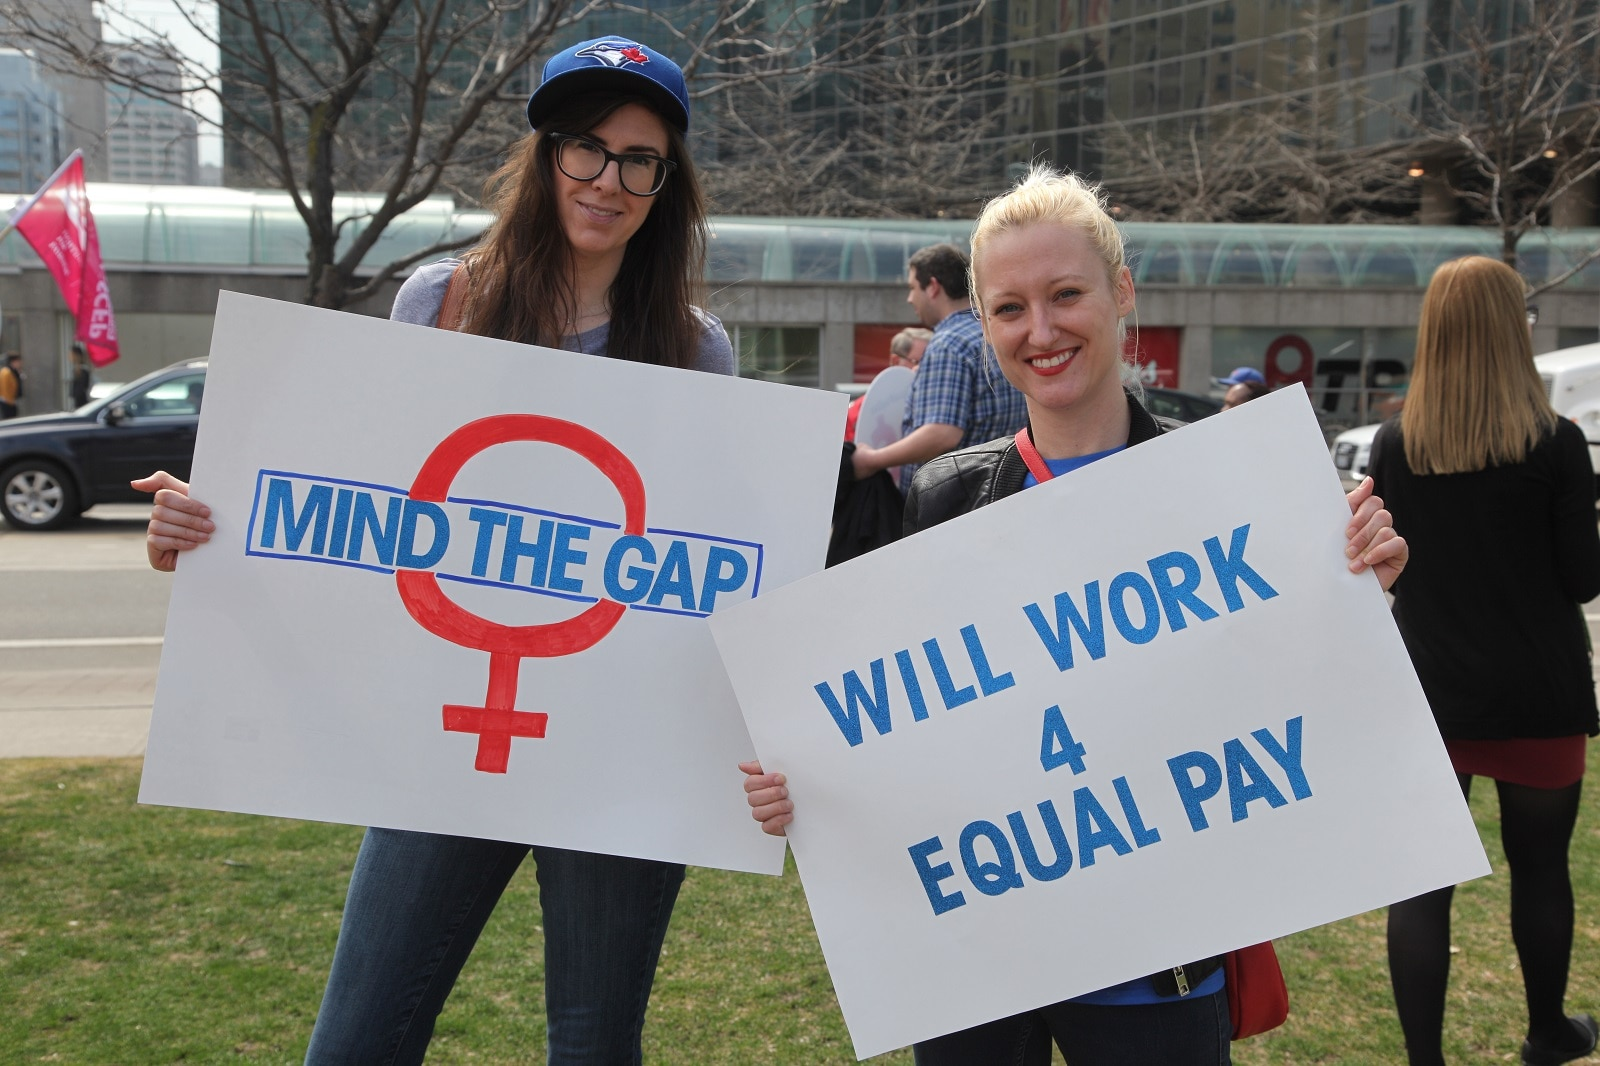 Women rally to demand equal pay for women in Toronto, Canada.